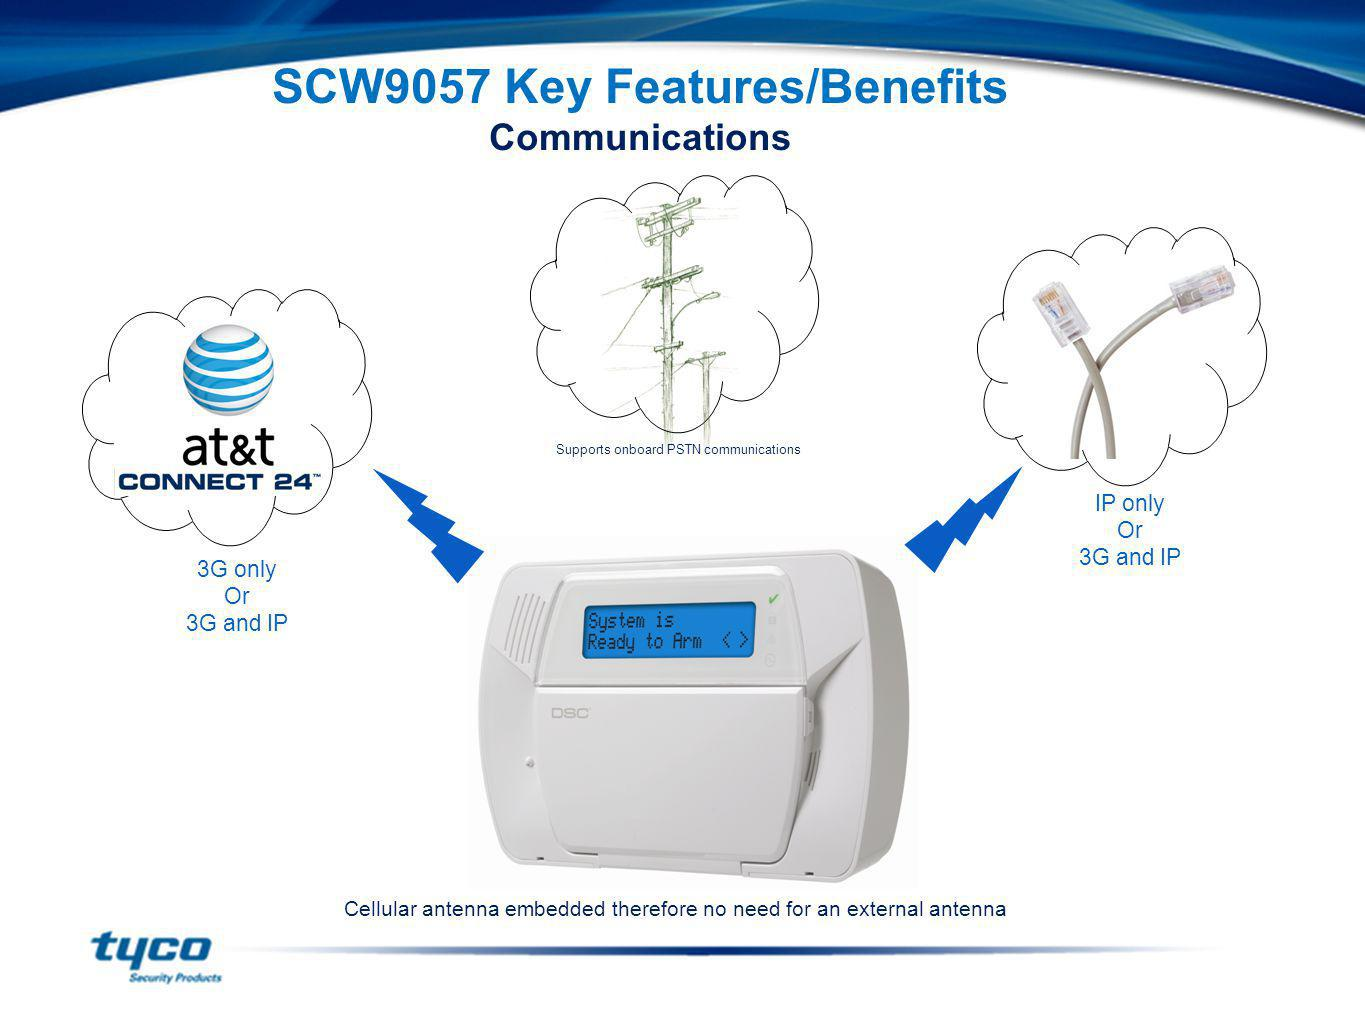 SCW9057 Key Features/Benefits Communications Cellular antenna embedded therefore no need for an external antenna Supports onboard PSTN communications